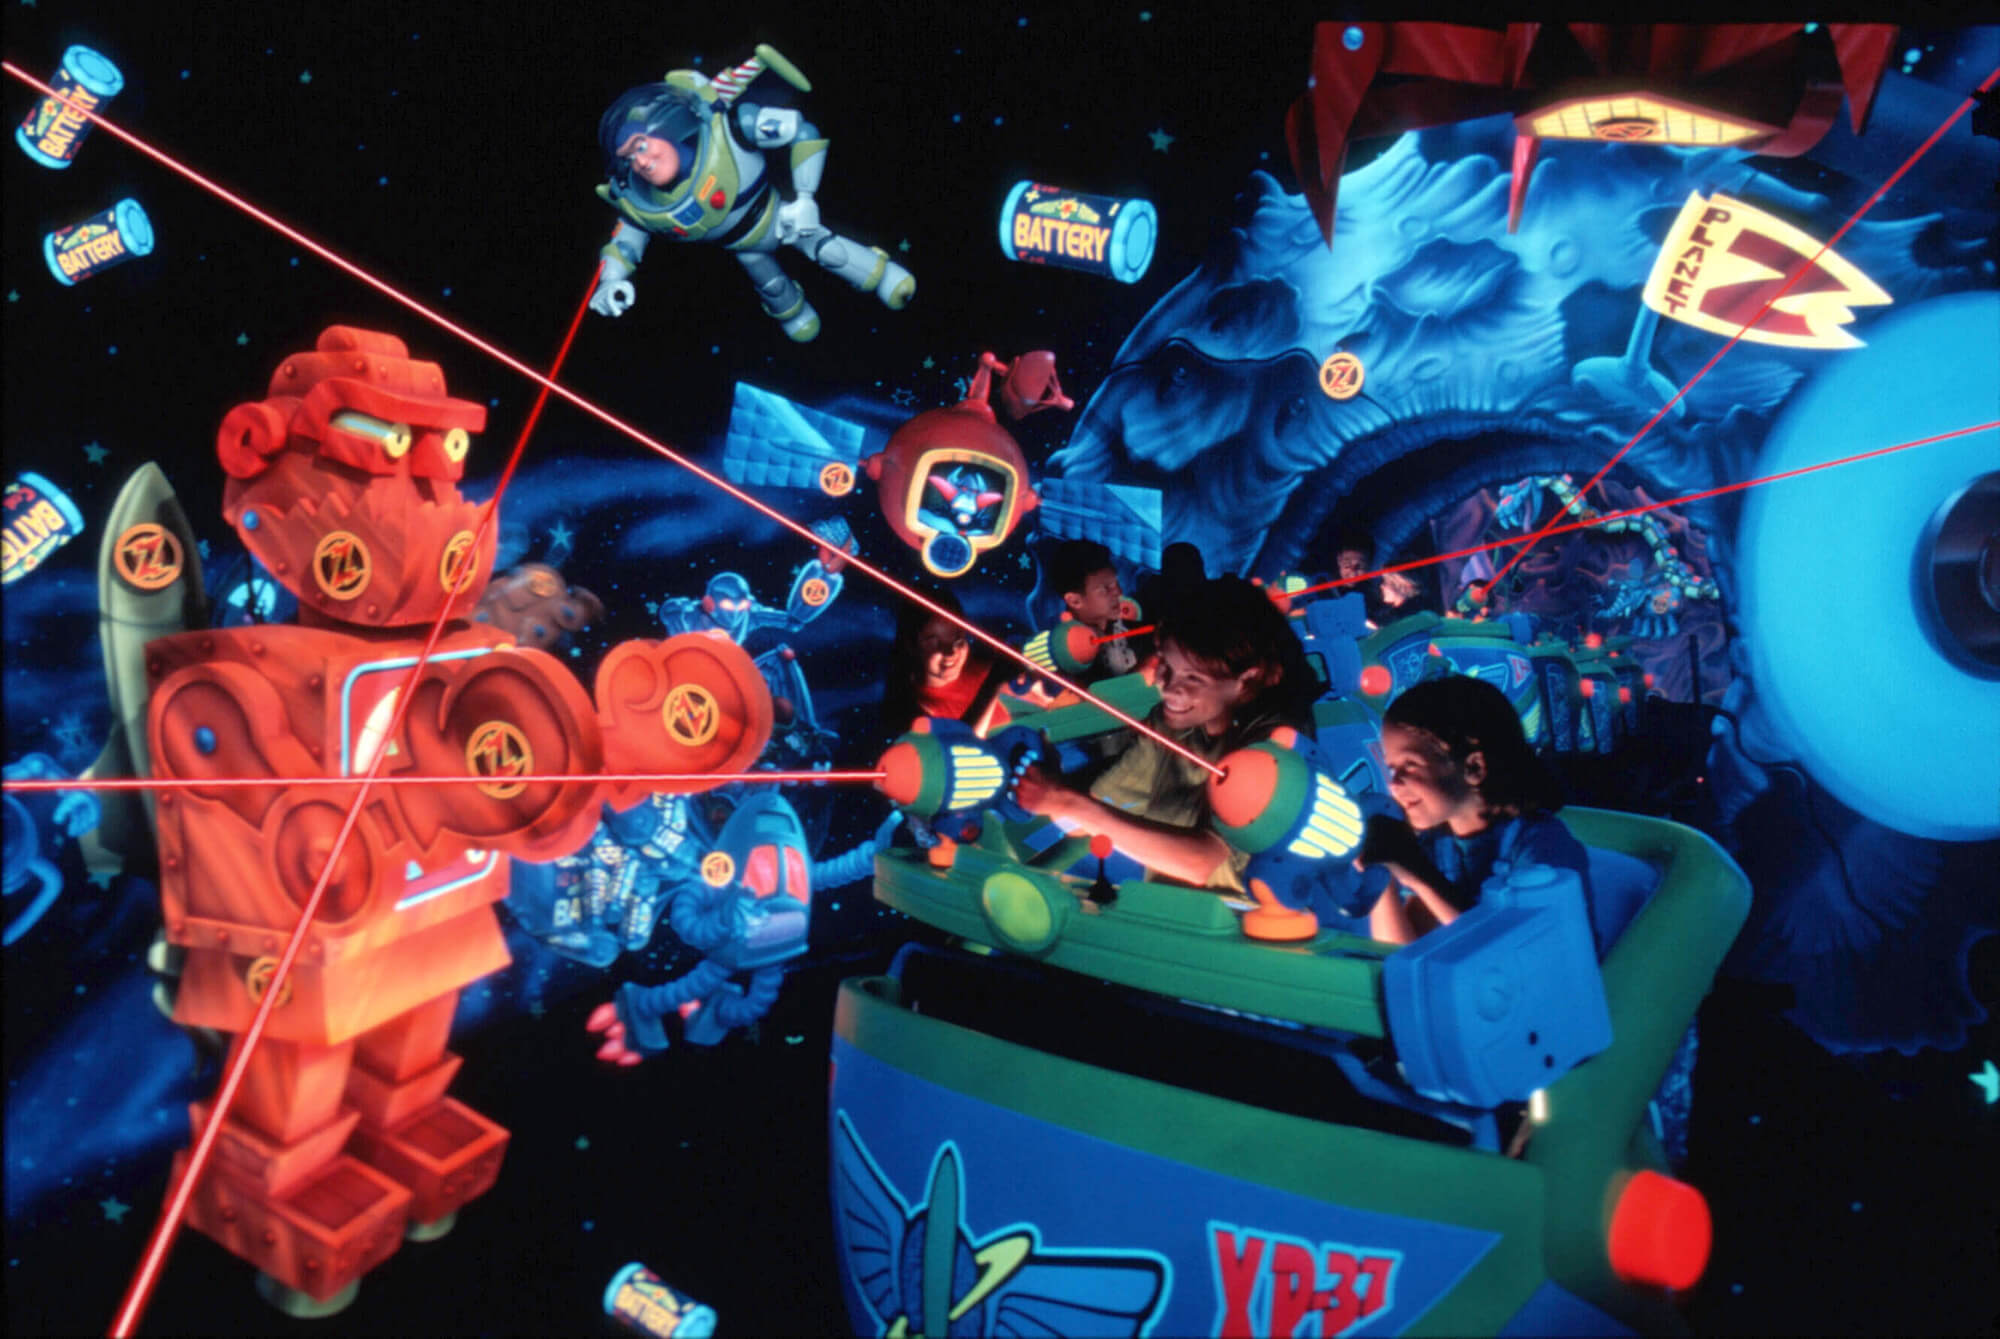 Buzz Lightyear Astro Blasters Things to do in disneyland